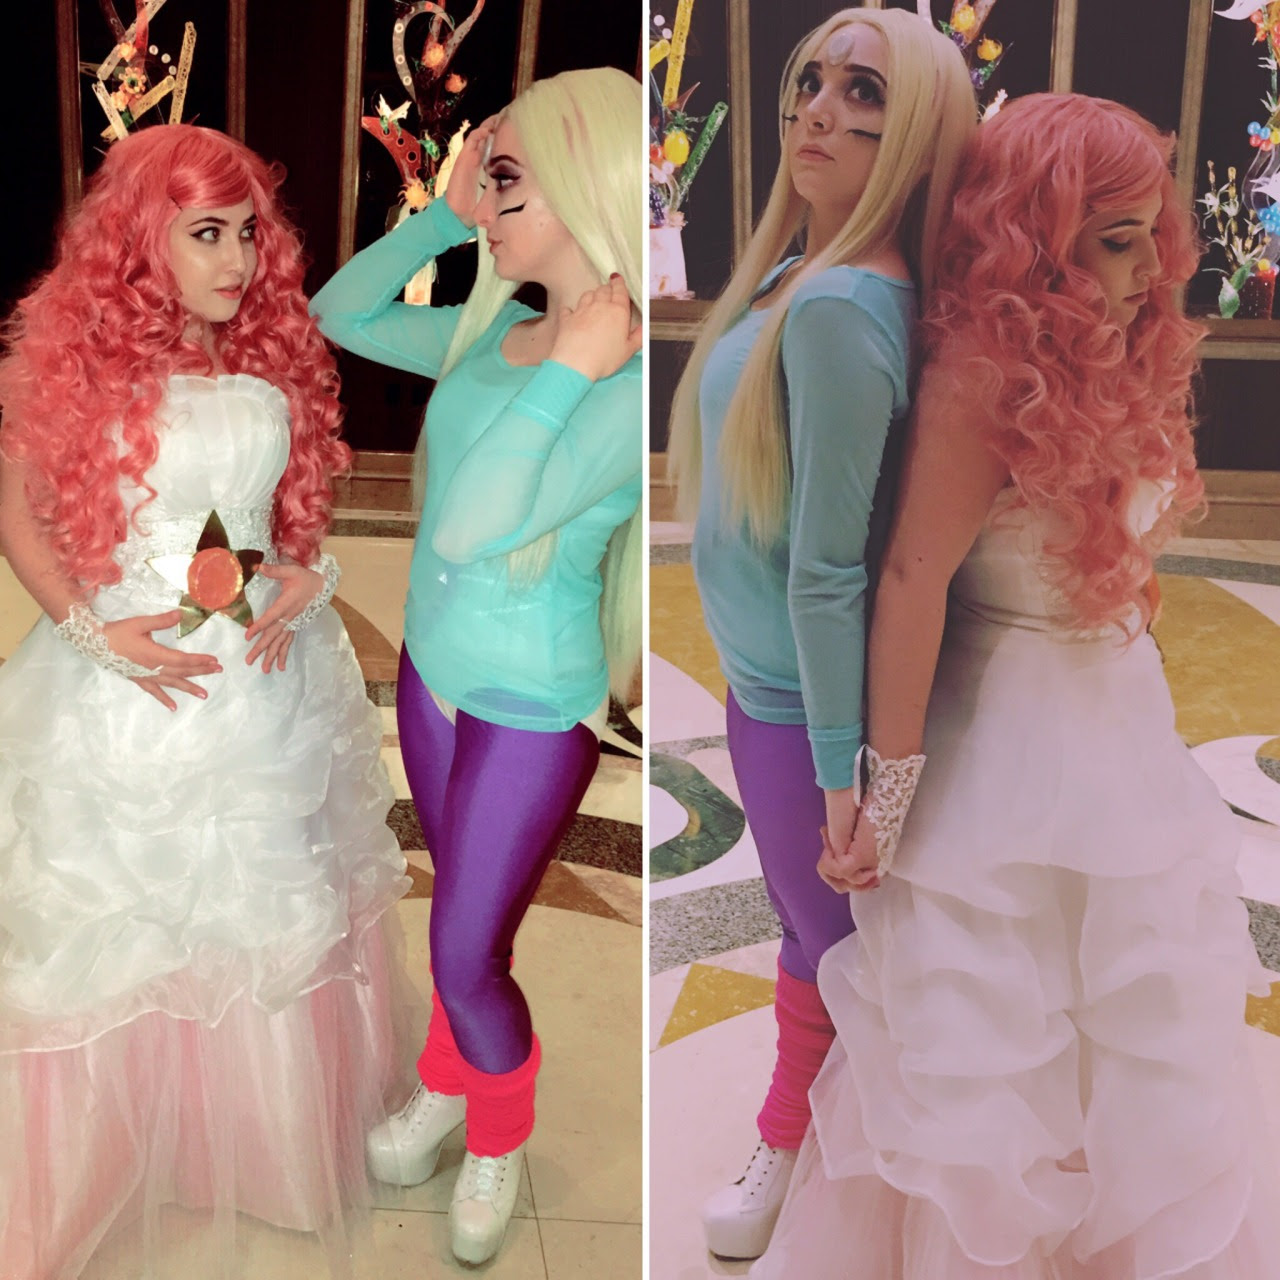 A little belated but here's a photo set of me as rose quartz and my lovely friend as Rainbow Quartz! Makeup credits go to myself, wig credits go to my friend Jayson (who is also my Steven in these...